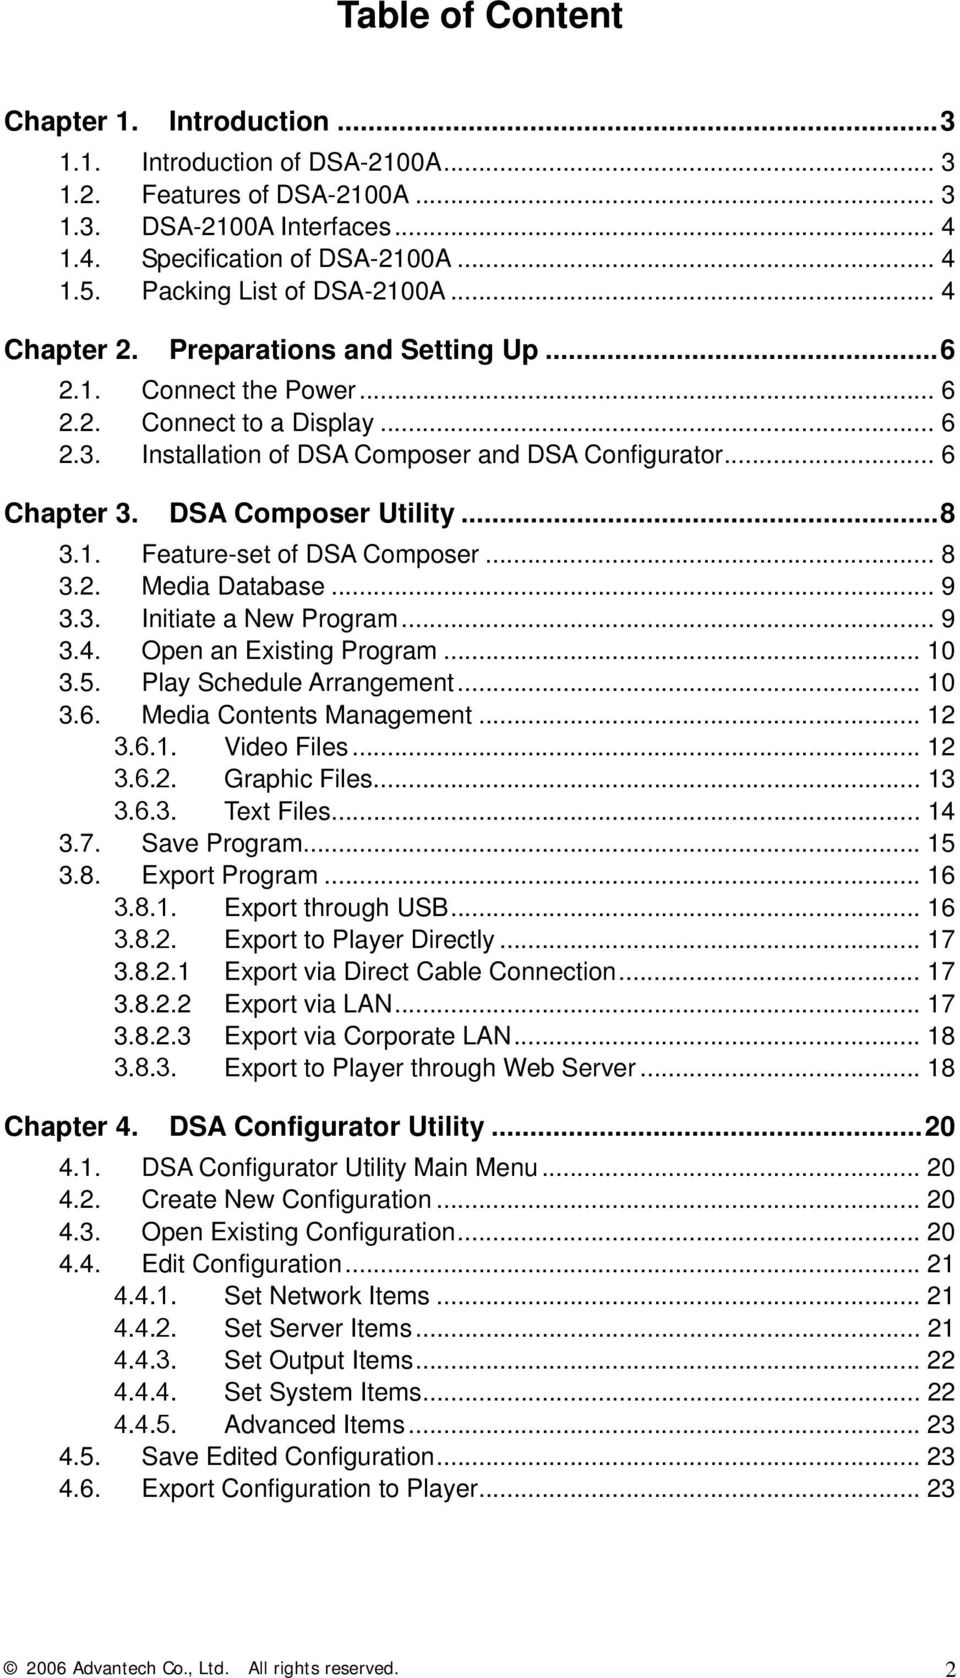 .. 6 Chapter 3. DSA Composer Utility...8 3.1. Feature-set of DSA Composer... 8 3.2. Media Database... 9 3.3. Initiate a New Program... 9 3.4. Open an Existing Program... 10 3.5.